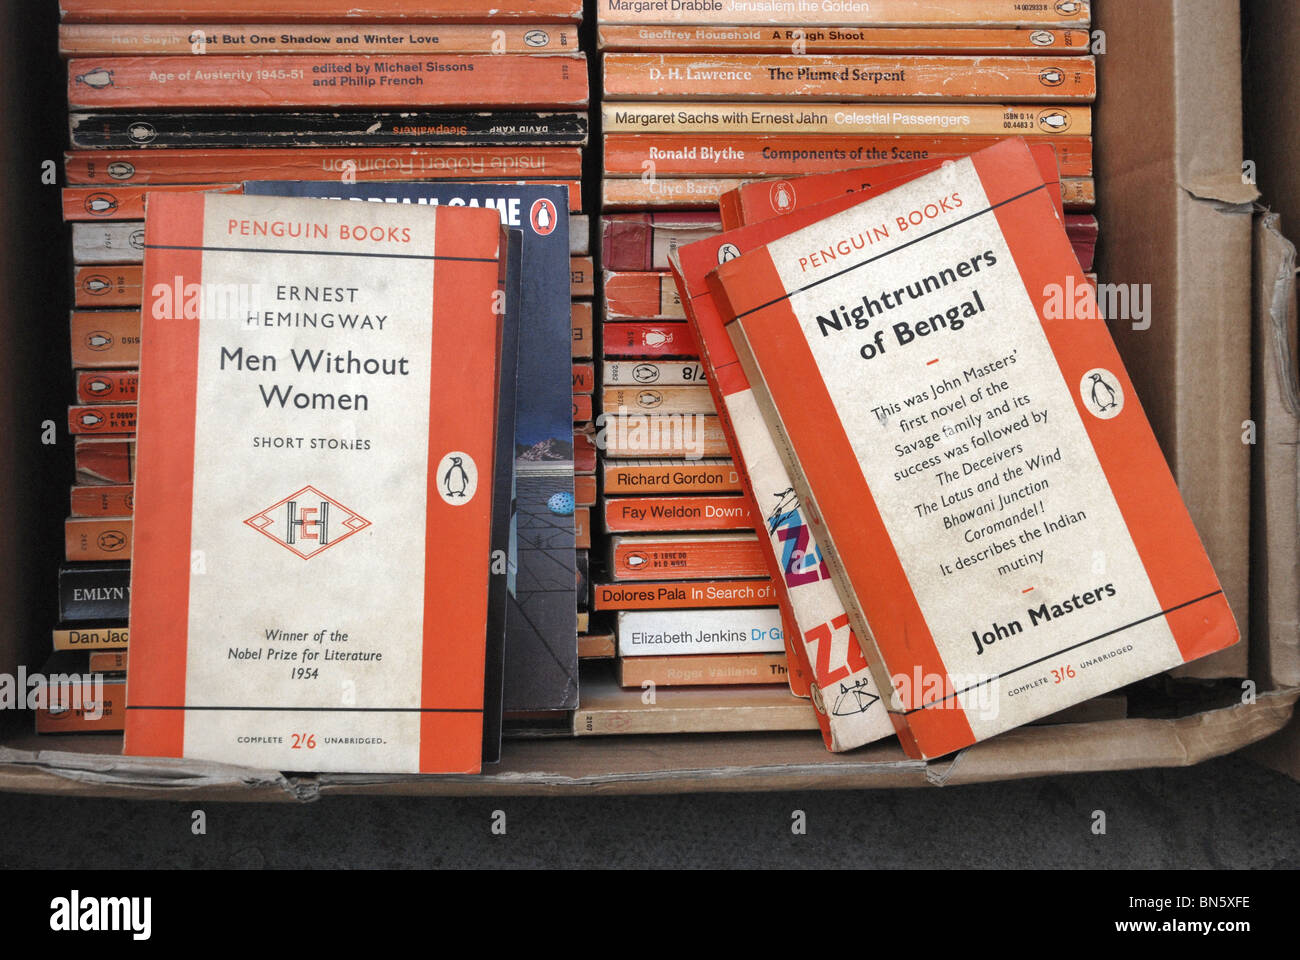 Penguin paperbacks at a secondhand bookshop in Edinburgh. - Stock Image